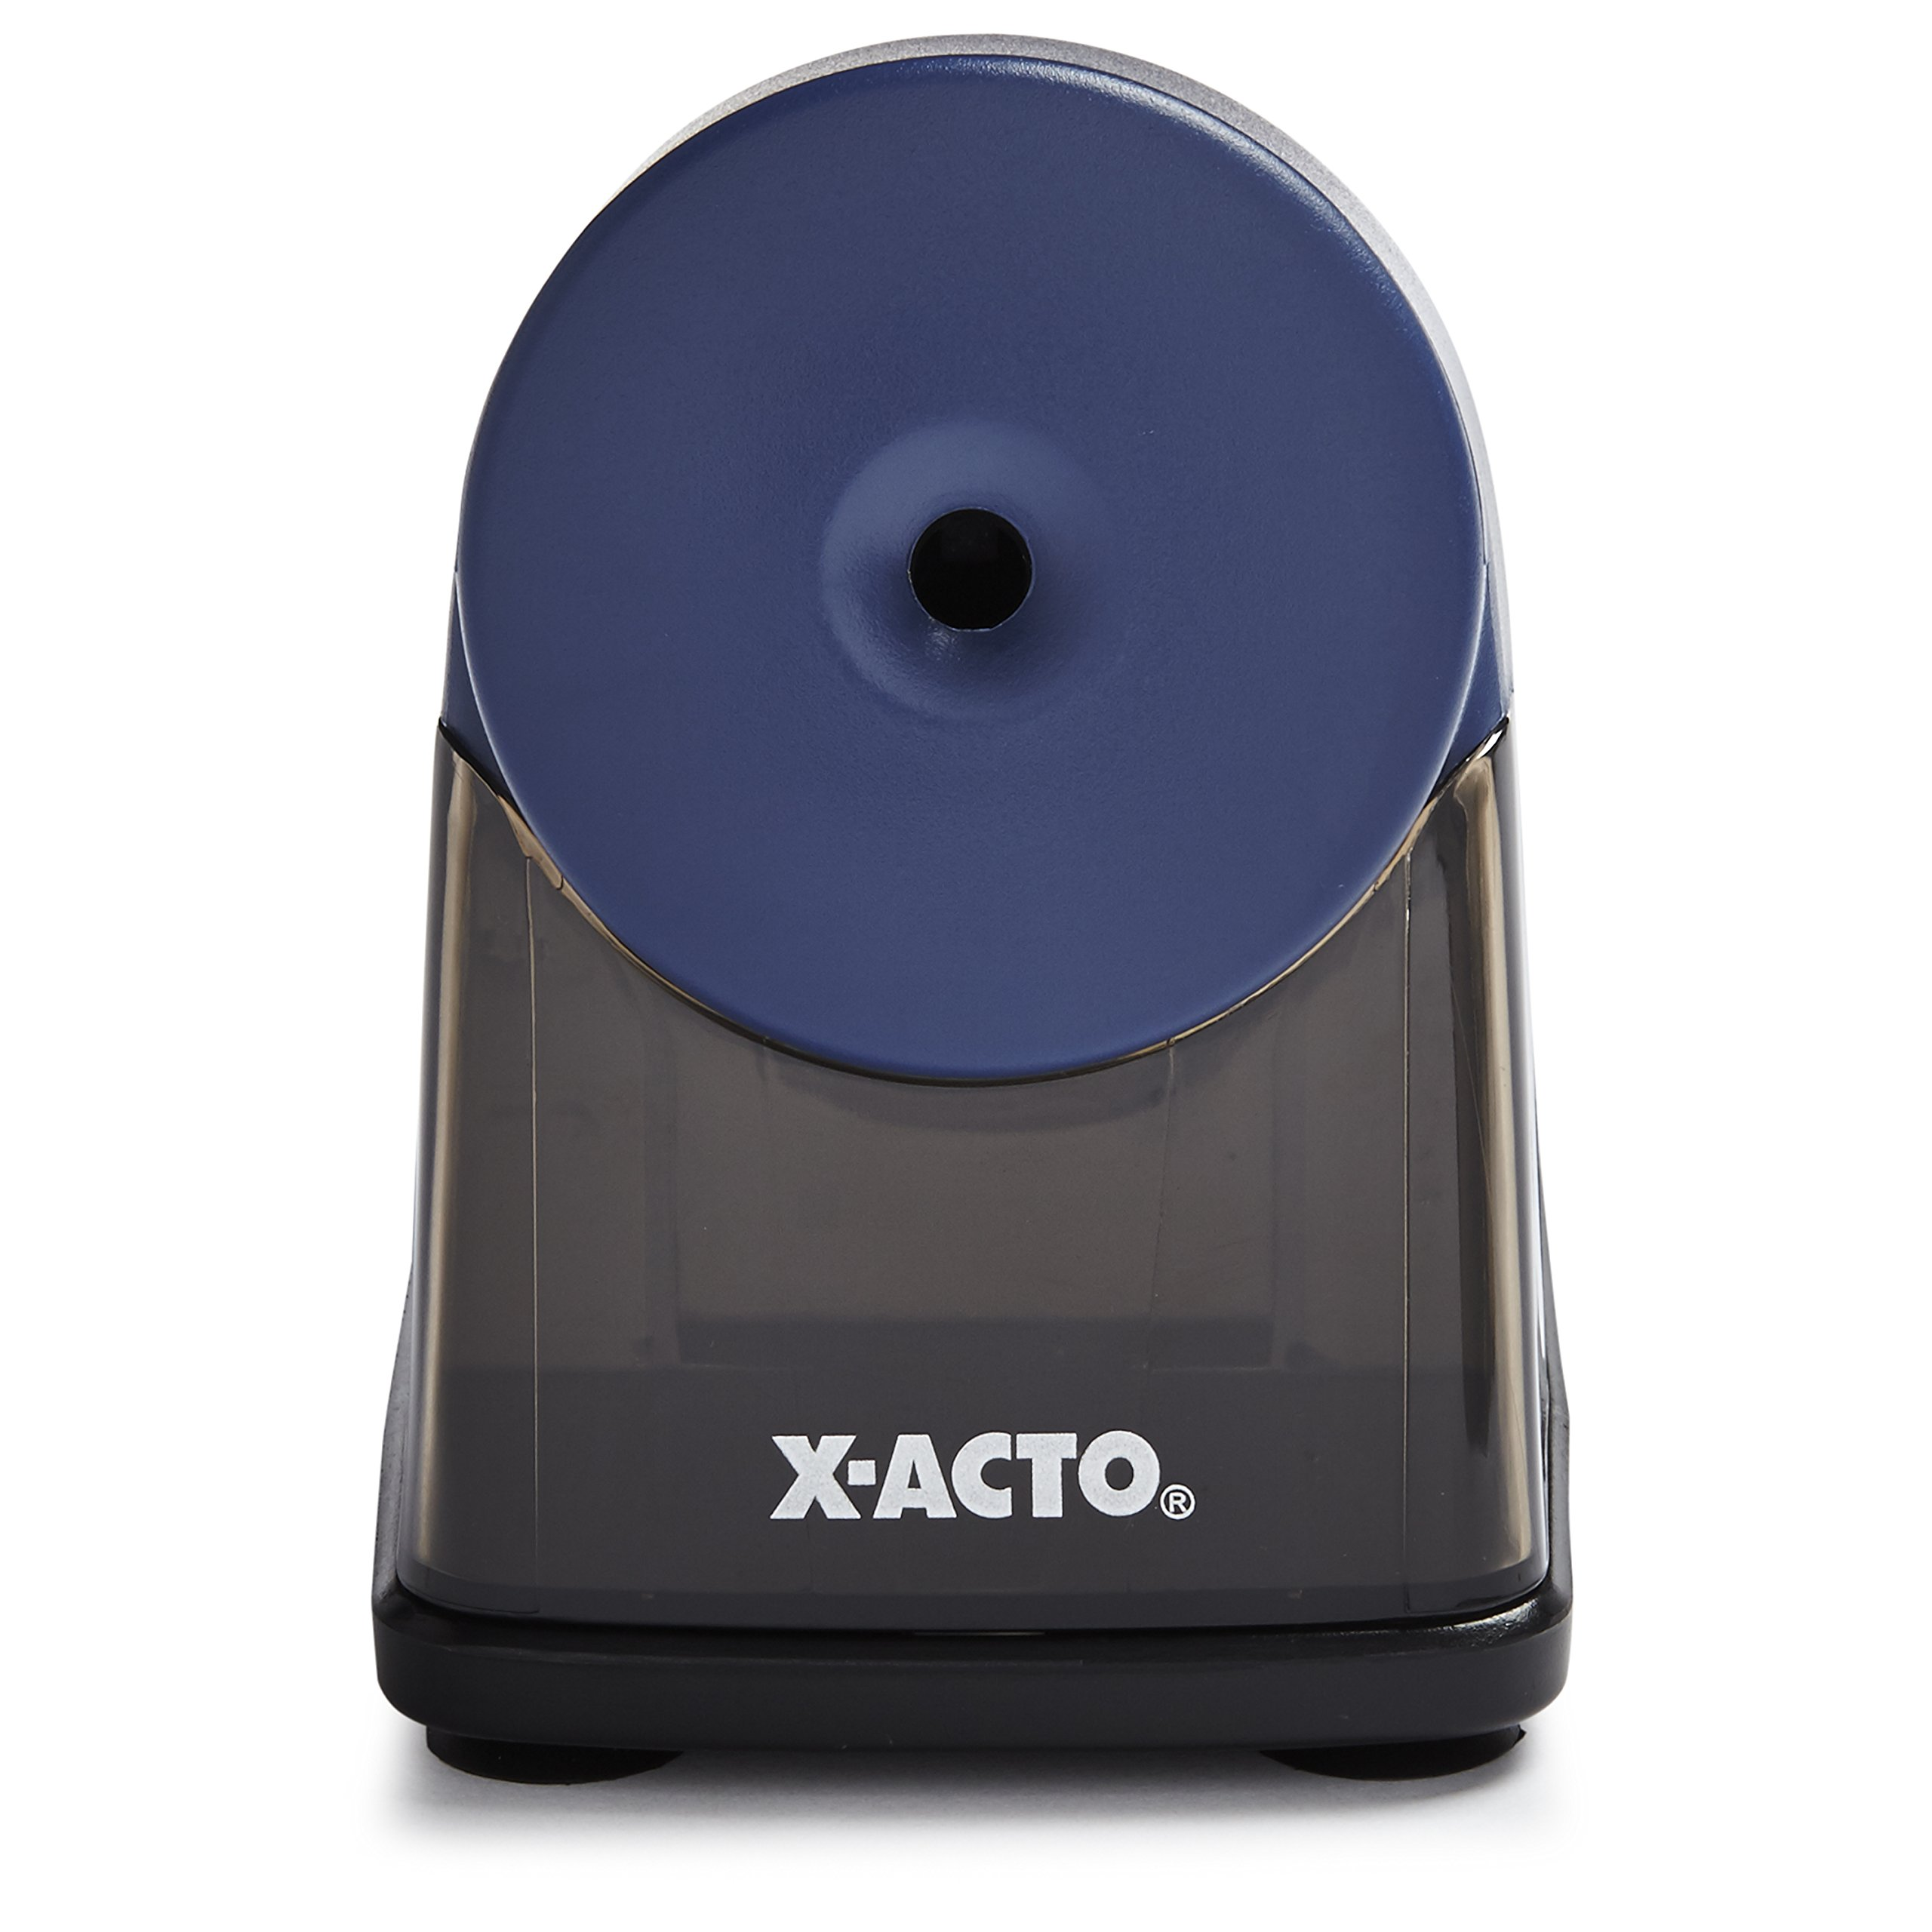 X-ACTO Powerhouse Electric Pencil Sharpener, Navy Blue by X-Acto (Image #2)